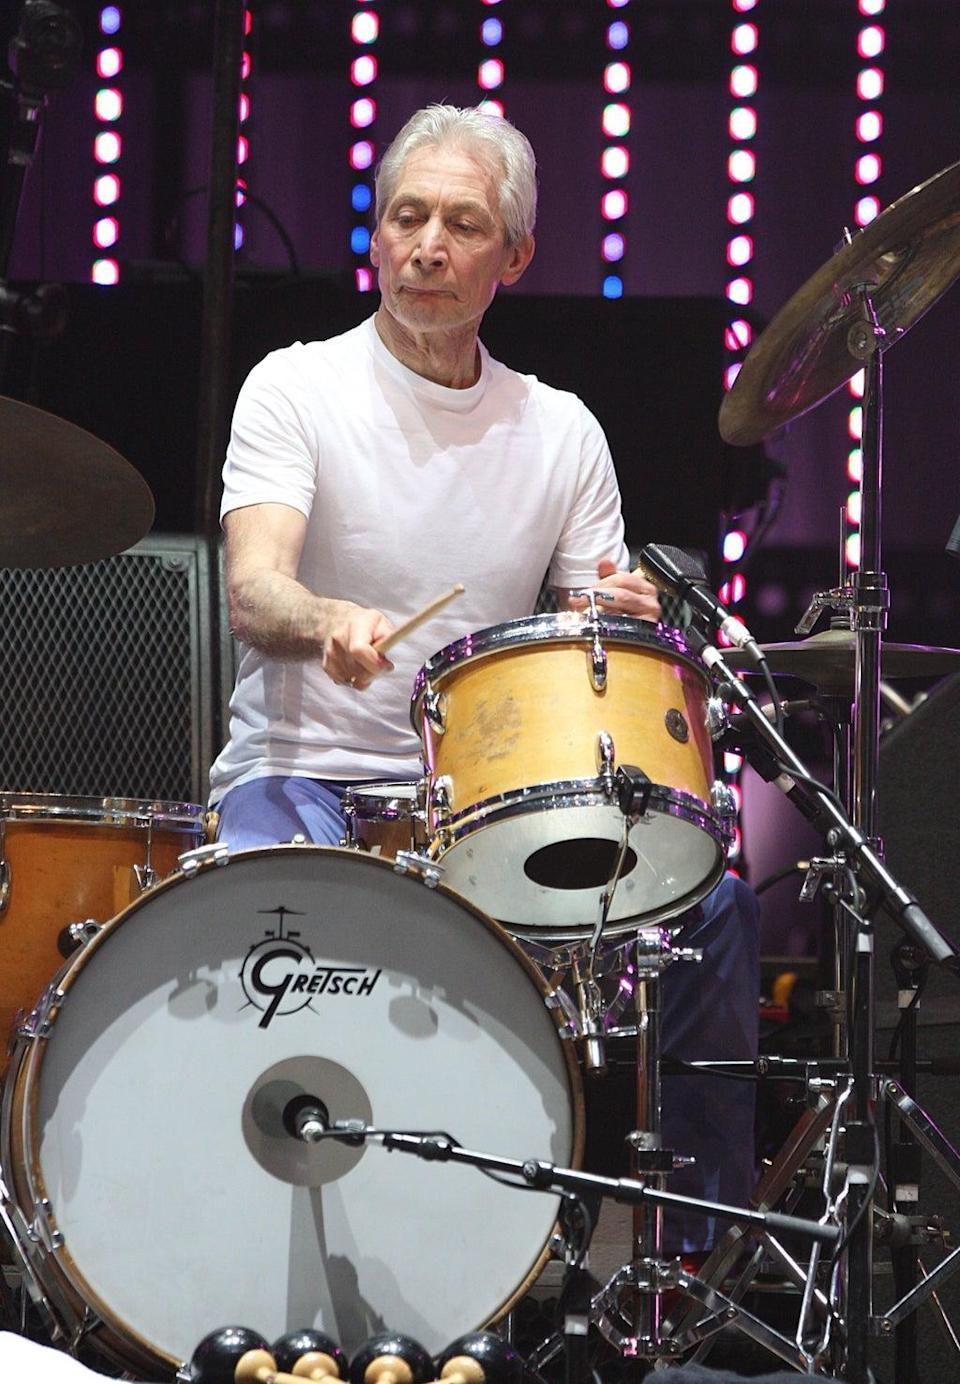 Charlie Watts enjoyed a varied career beyond The Rolling Stones (Ian West/PA) (PA Archive)